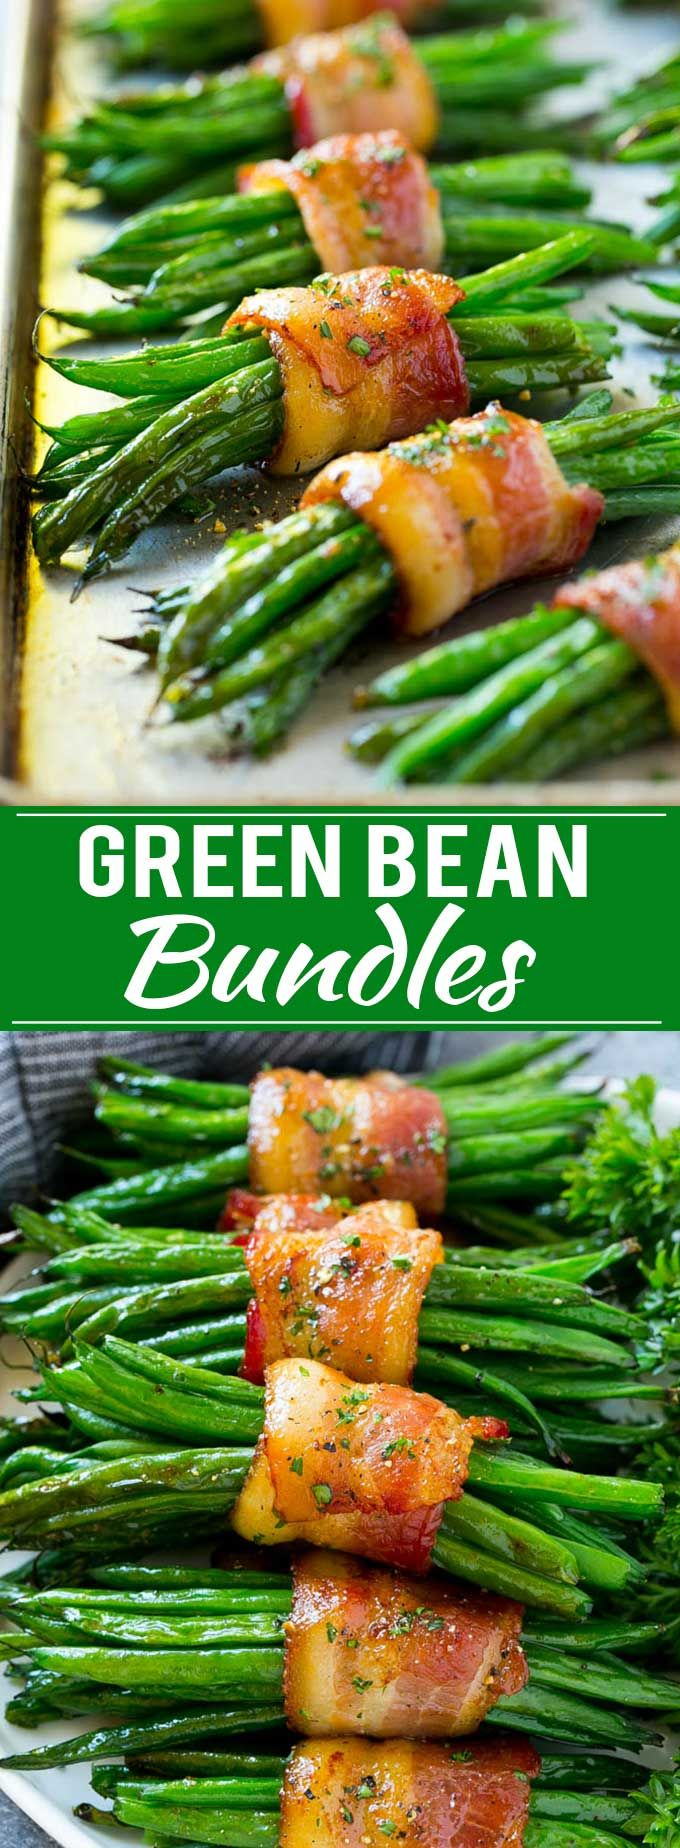 Green Bean Bundles Recipe | Bacon Wrapped Green Beans | Green Beans with Bacon | Green Beans Recipe